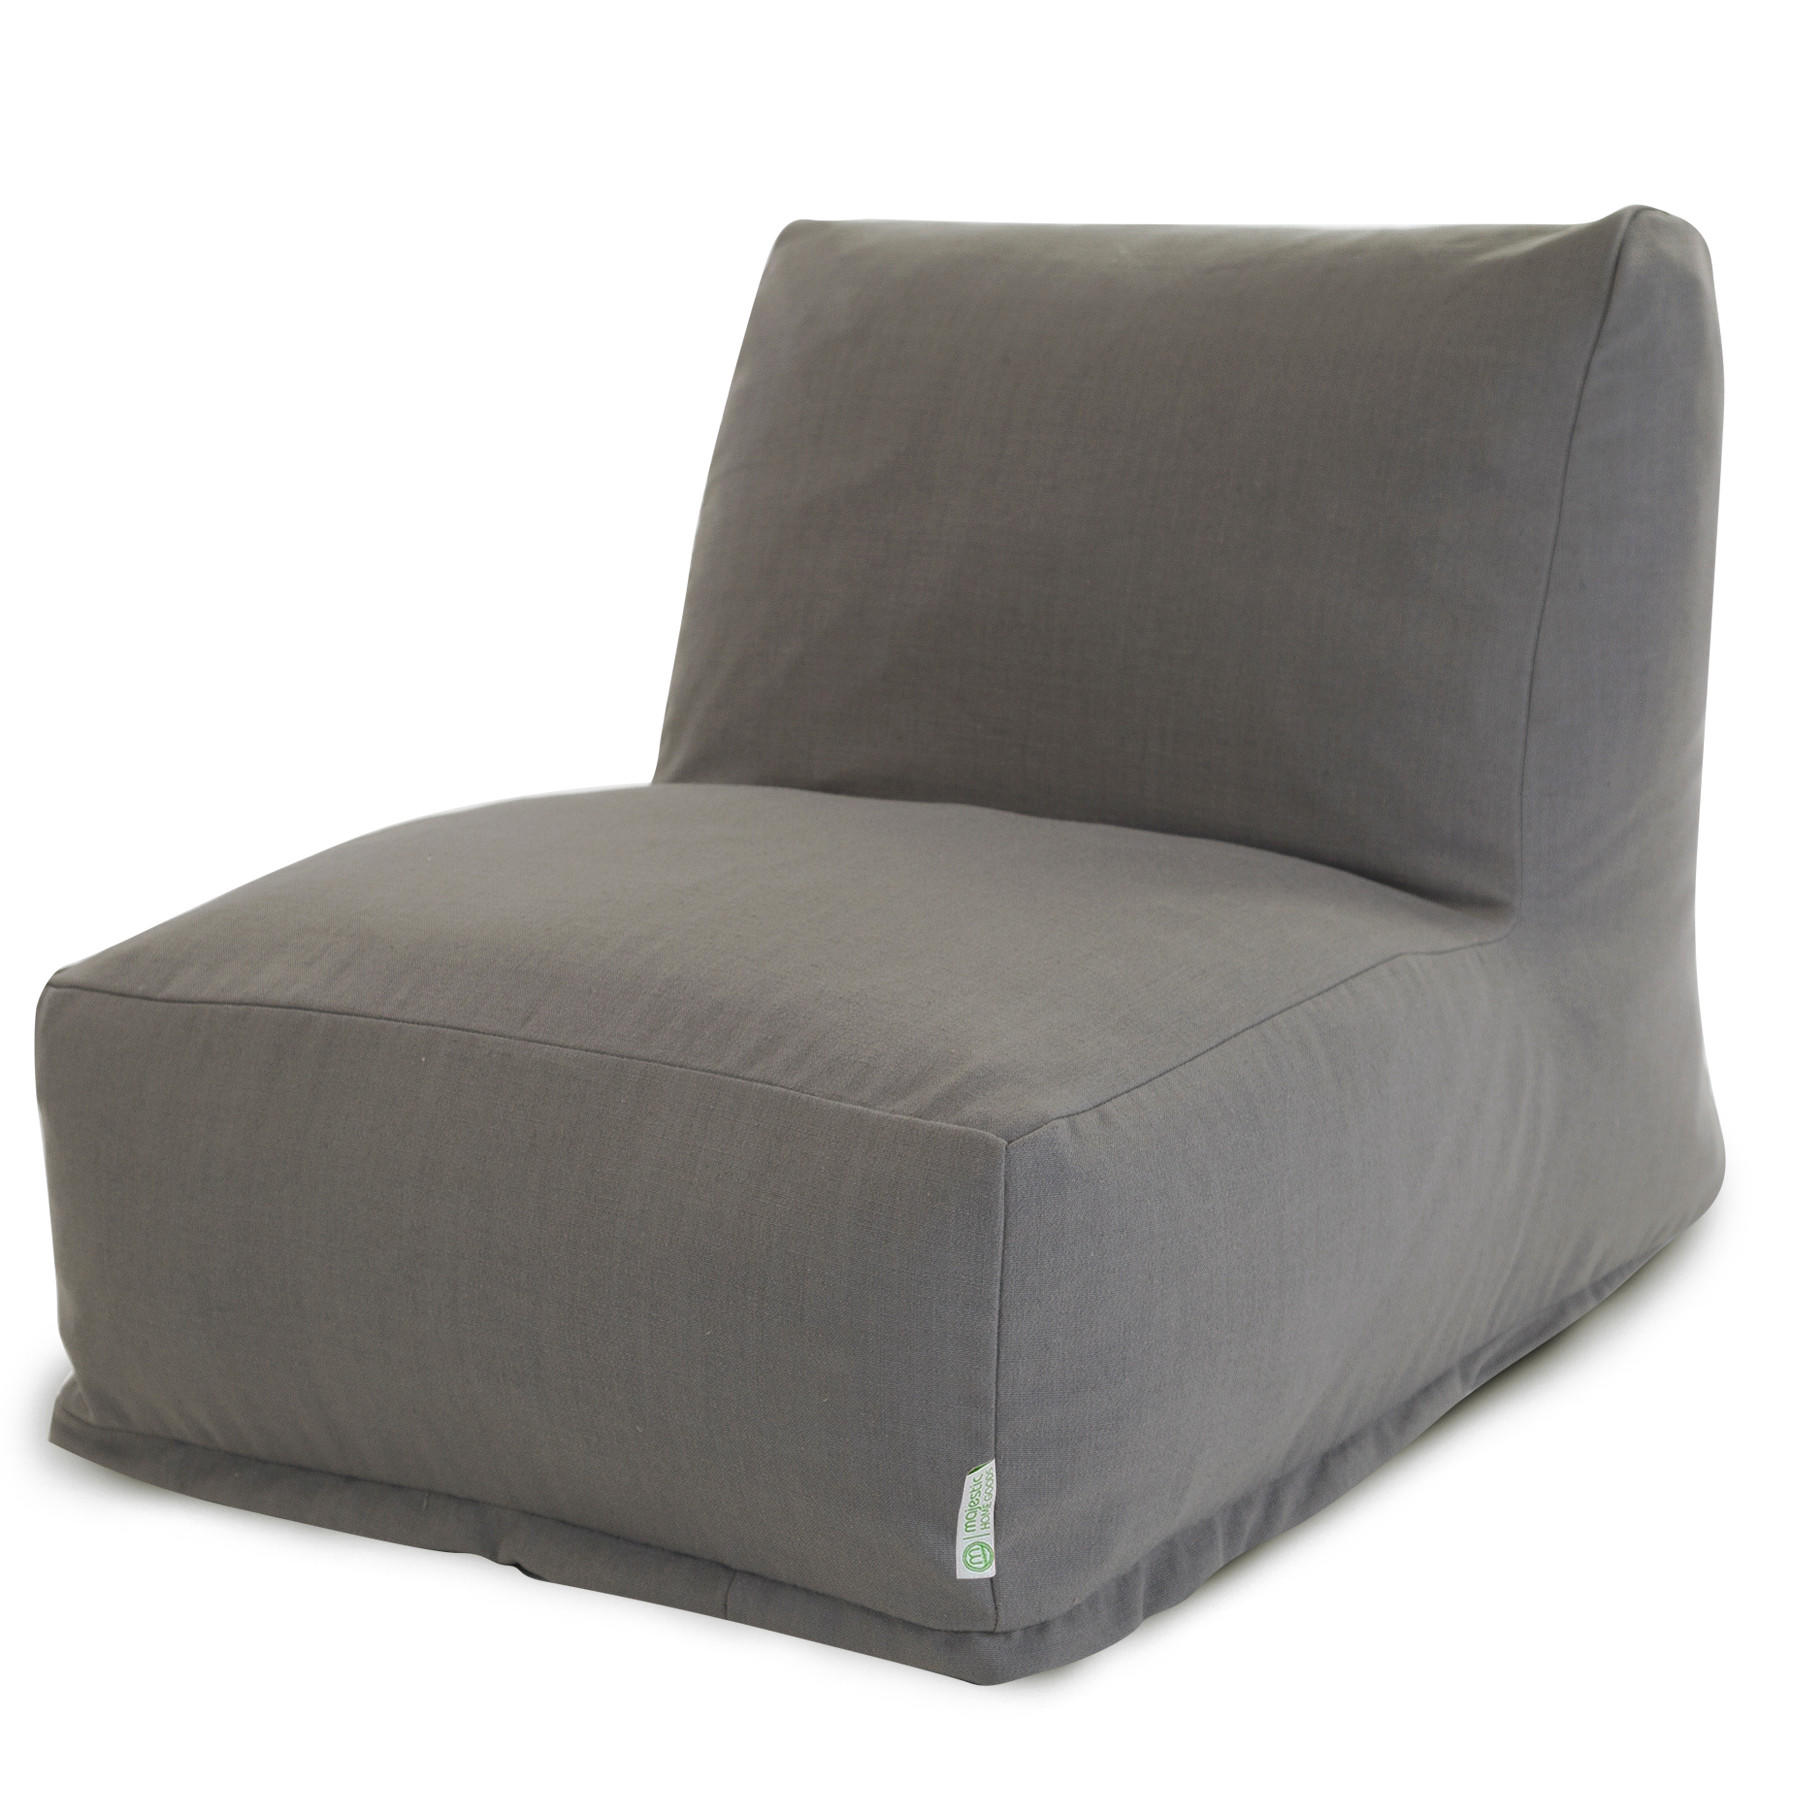 Gray Wales Bean Bag Chair Lounger From Giddet Bean Bags And